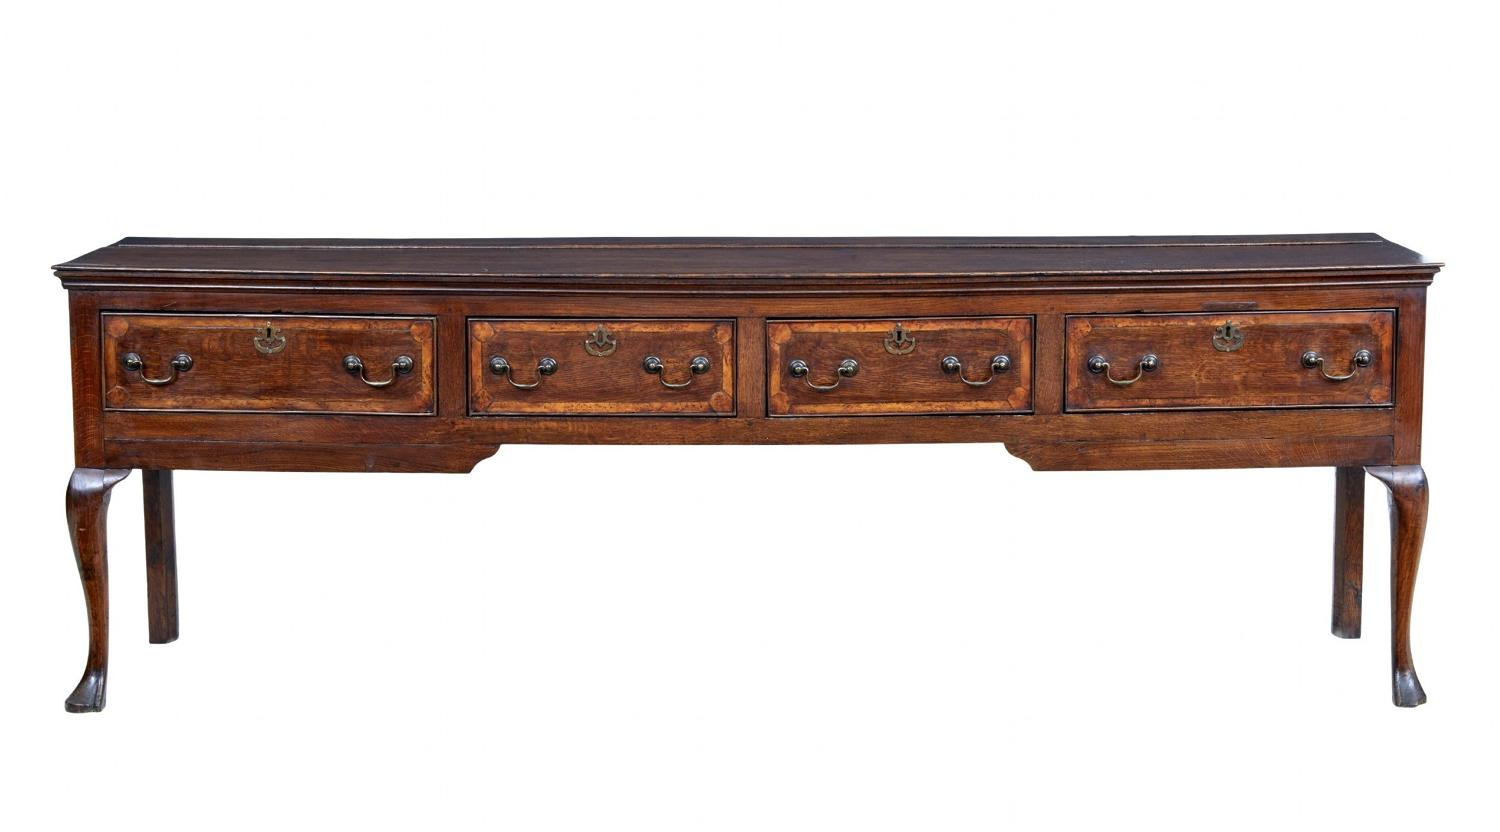 A Superior Quality Large 8ft Oak Cabriol Legged Server/dresser